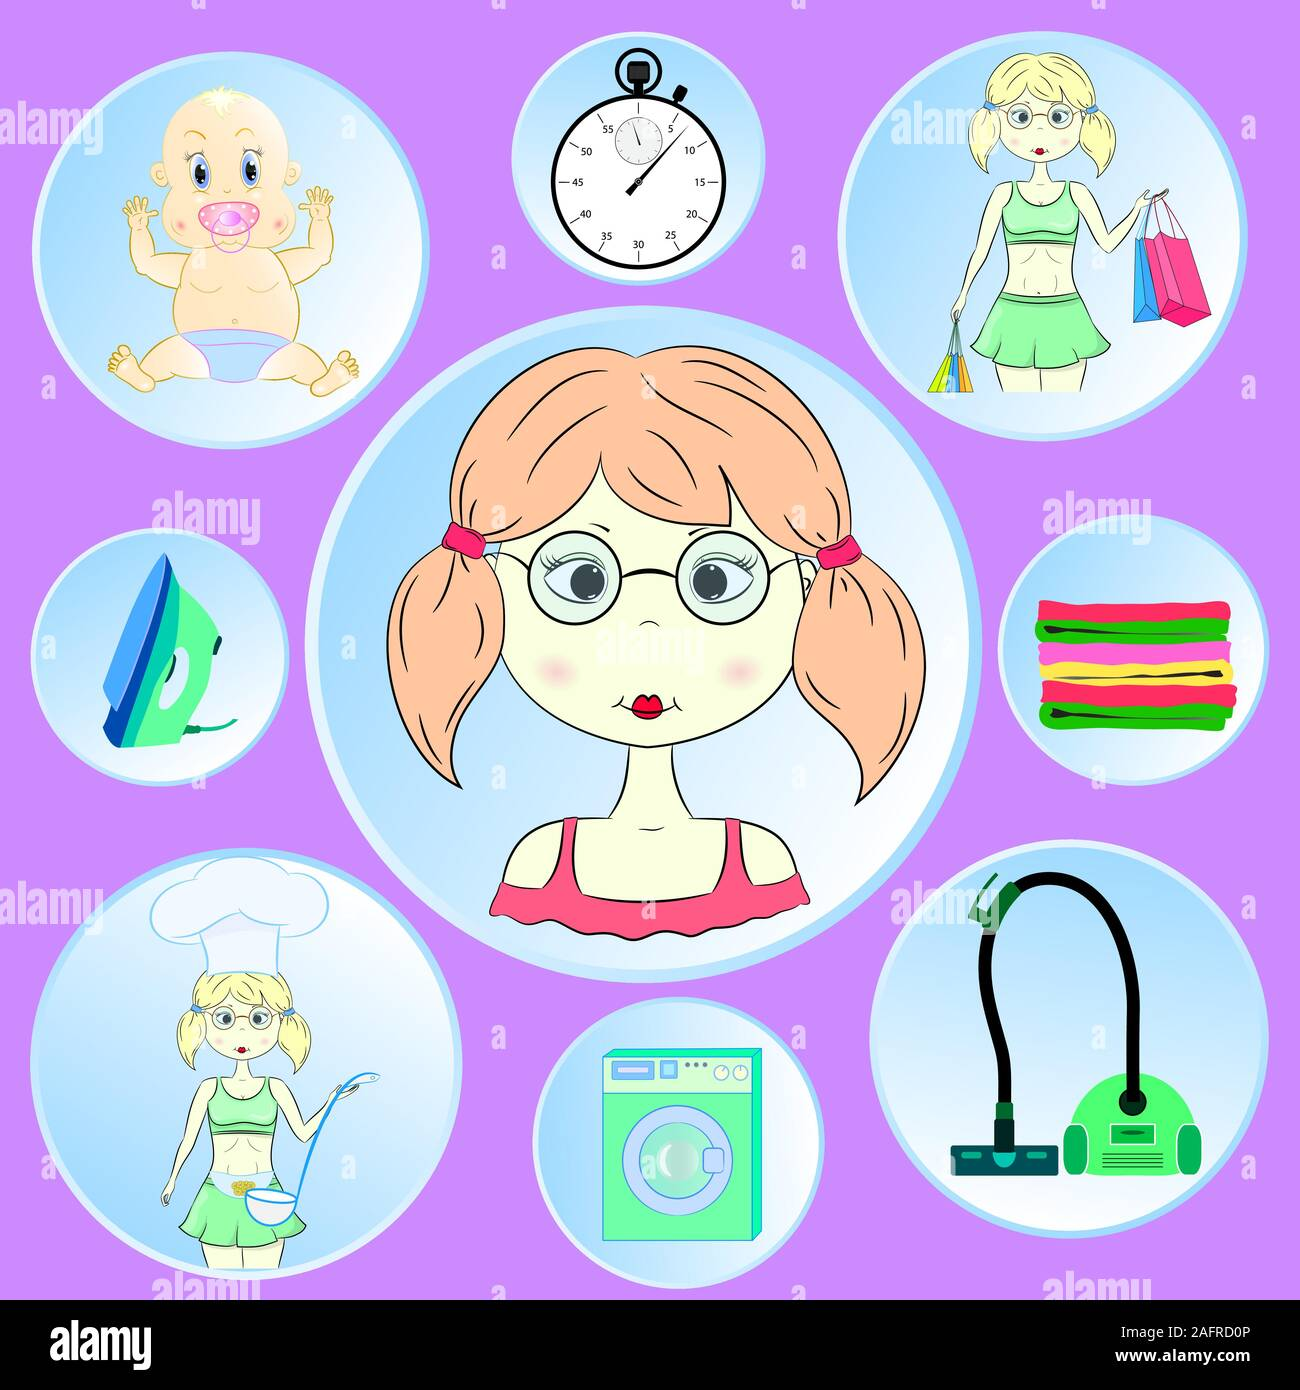 Cute young housewife vector illustration images. Stock Vector